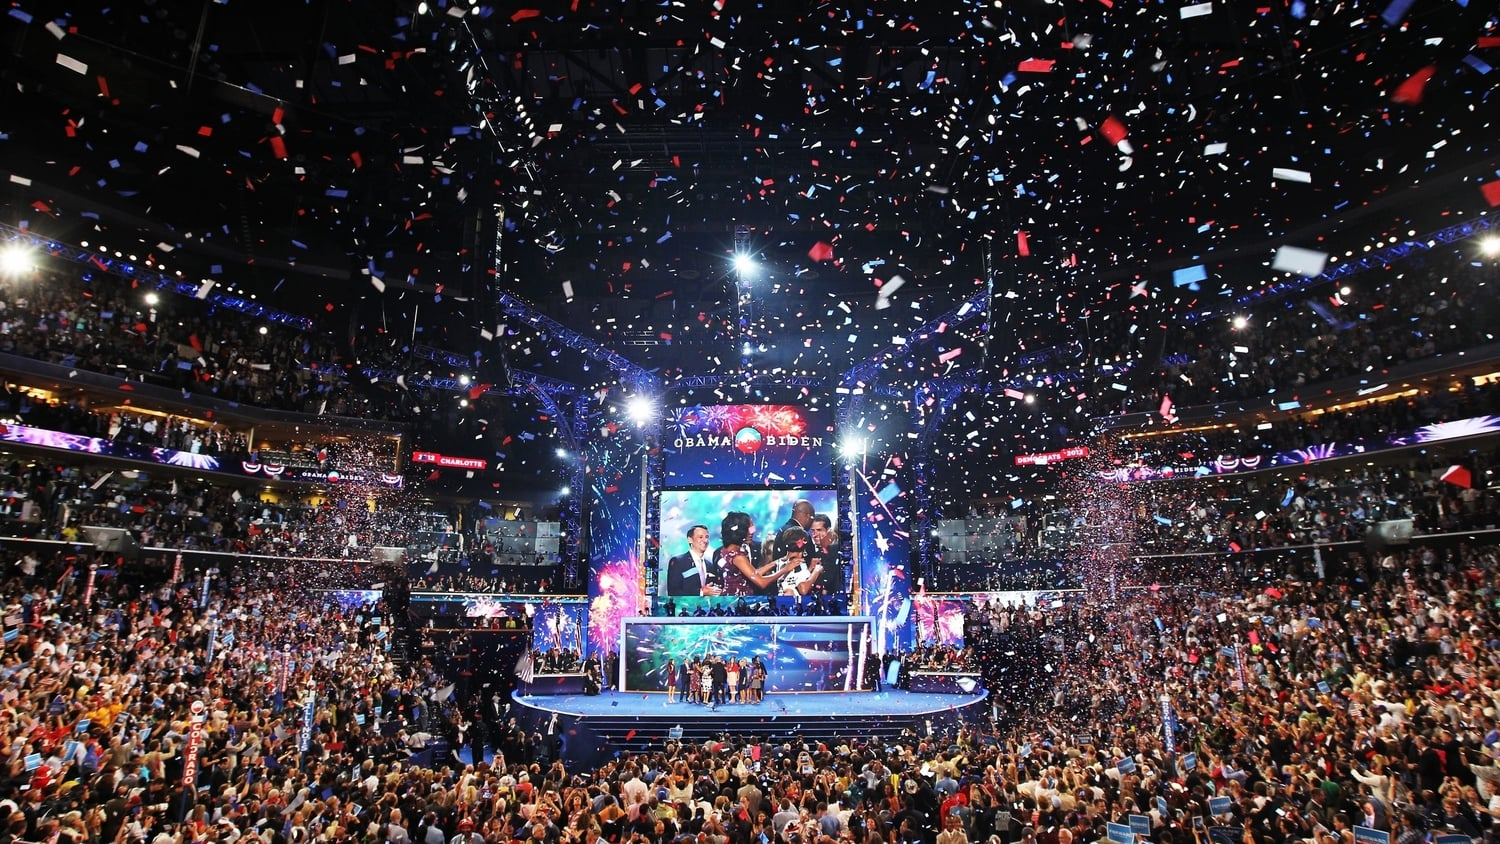 Democratic national convention pictures